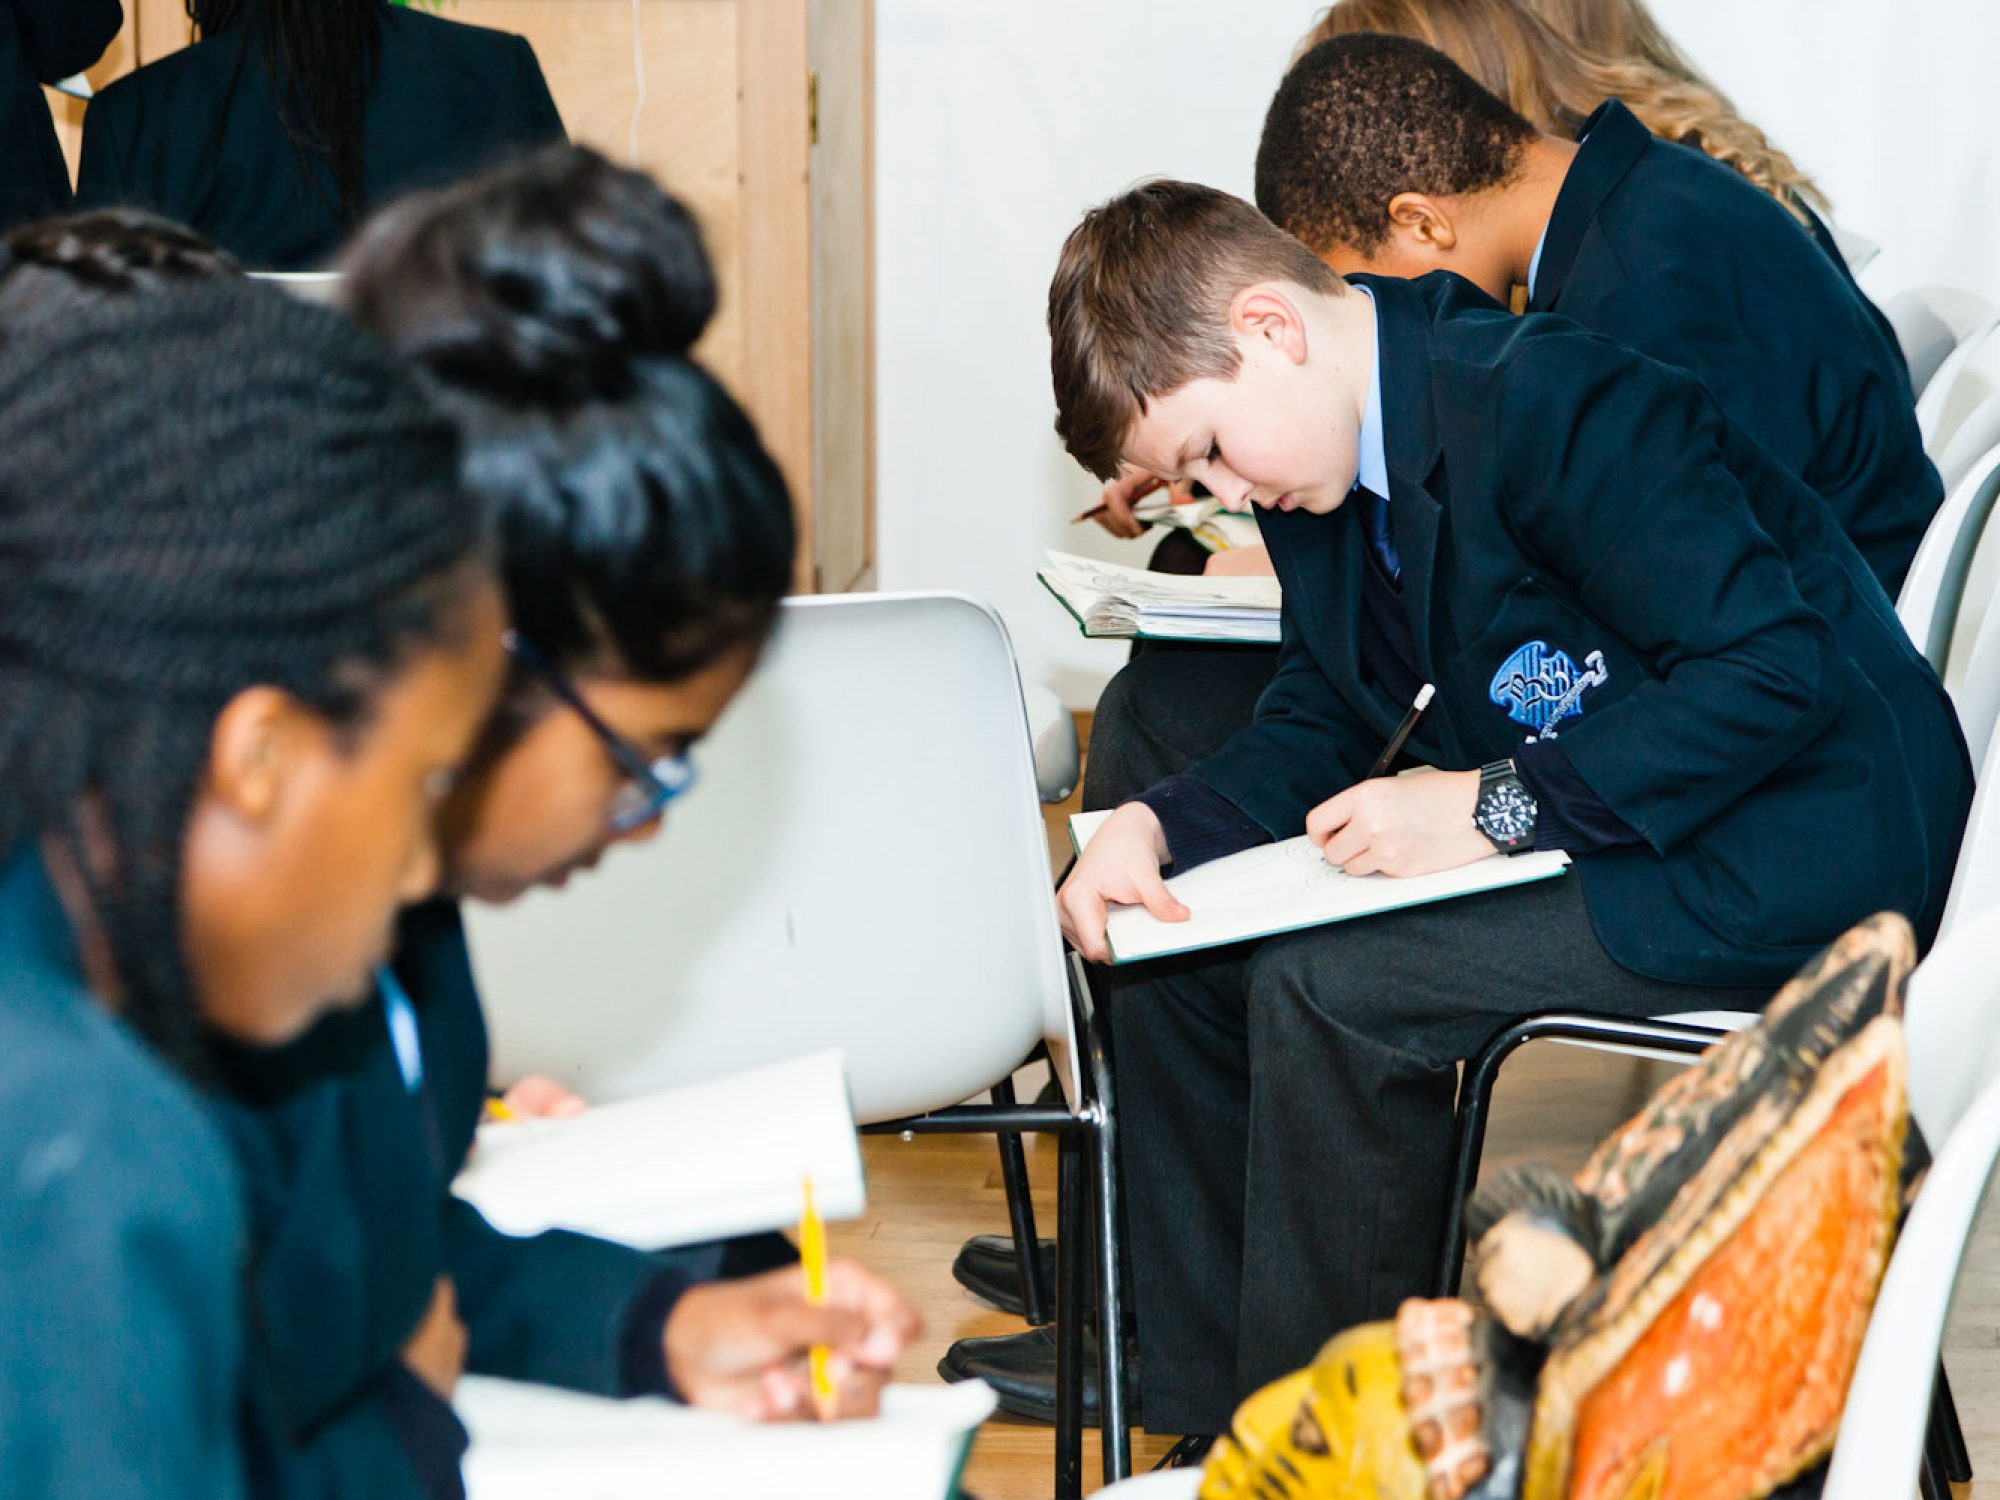 A group of school children in blue blazers sat in a room. IN the background are two boys who are drawing something unseen. Close to the camera are two girls who are drawing a mask.